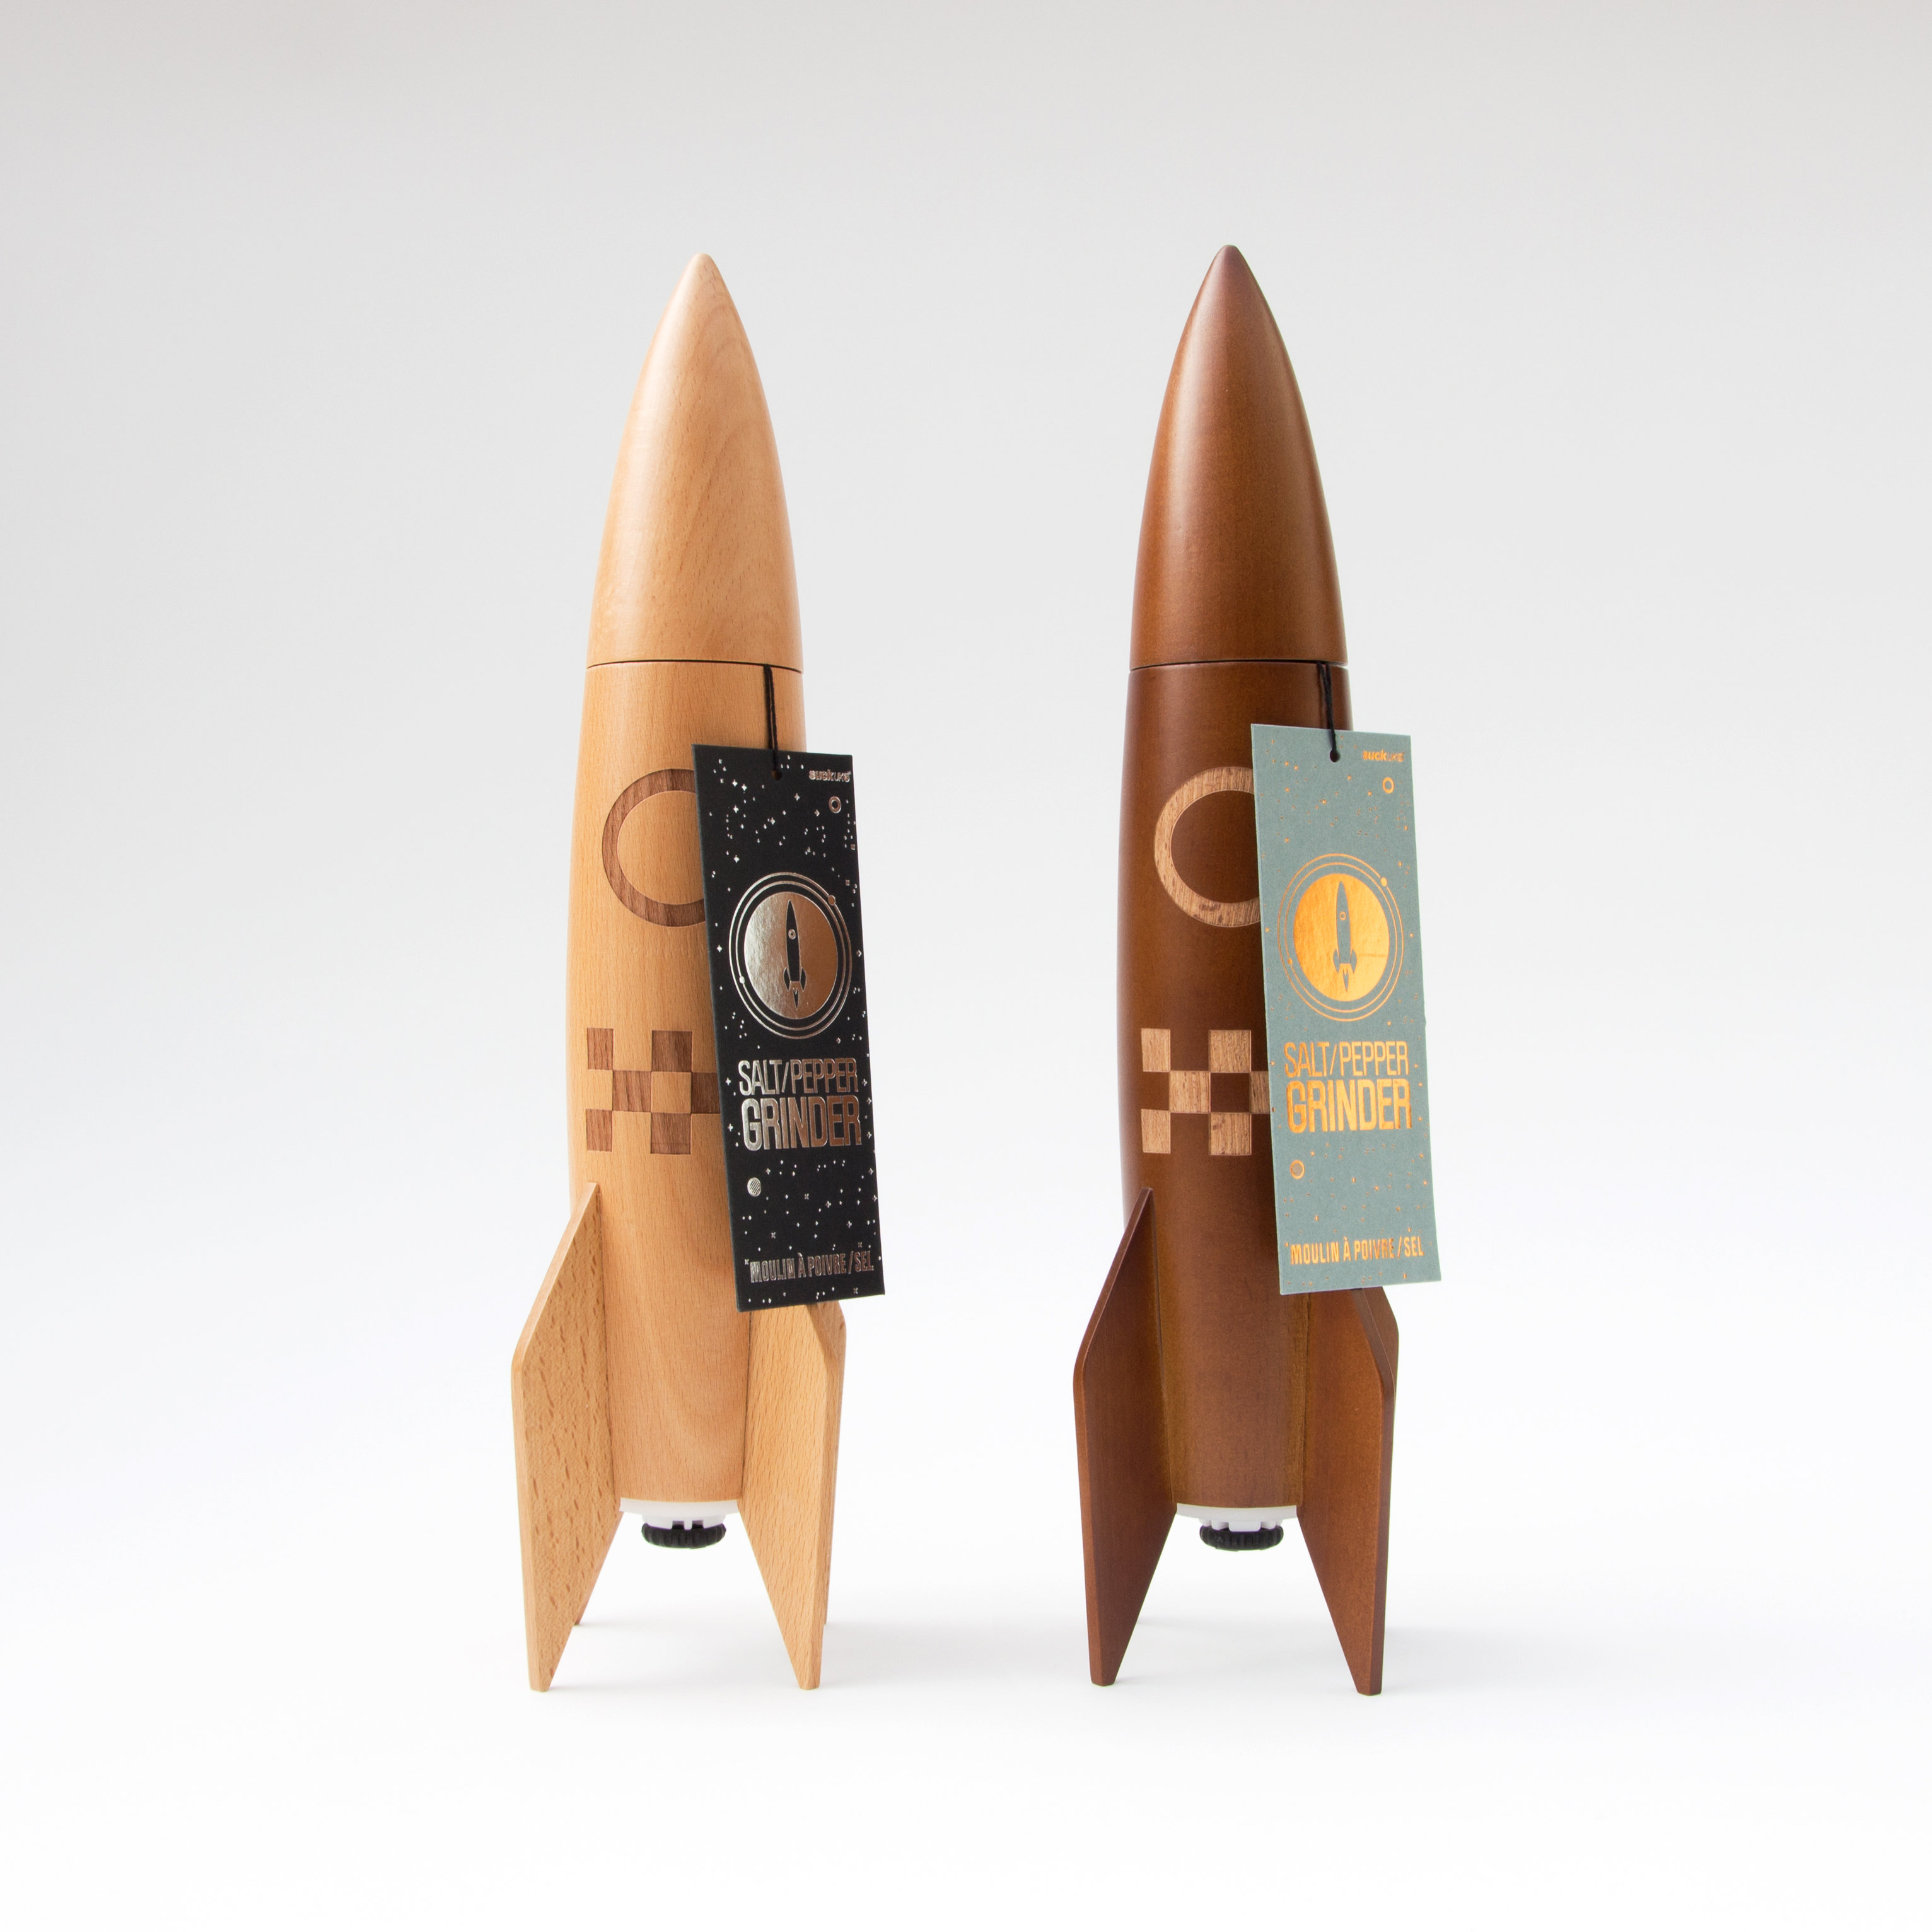 Rocket salt and pepper grinders with tags